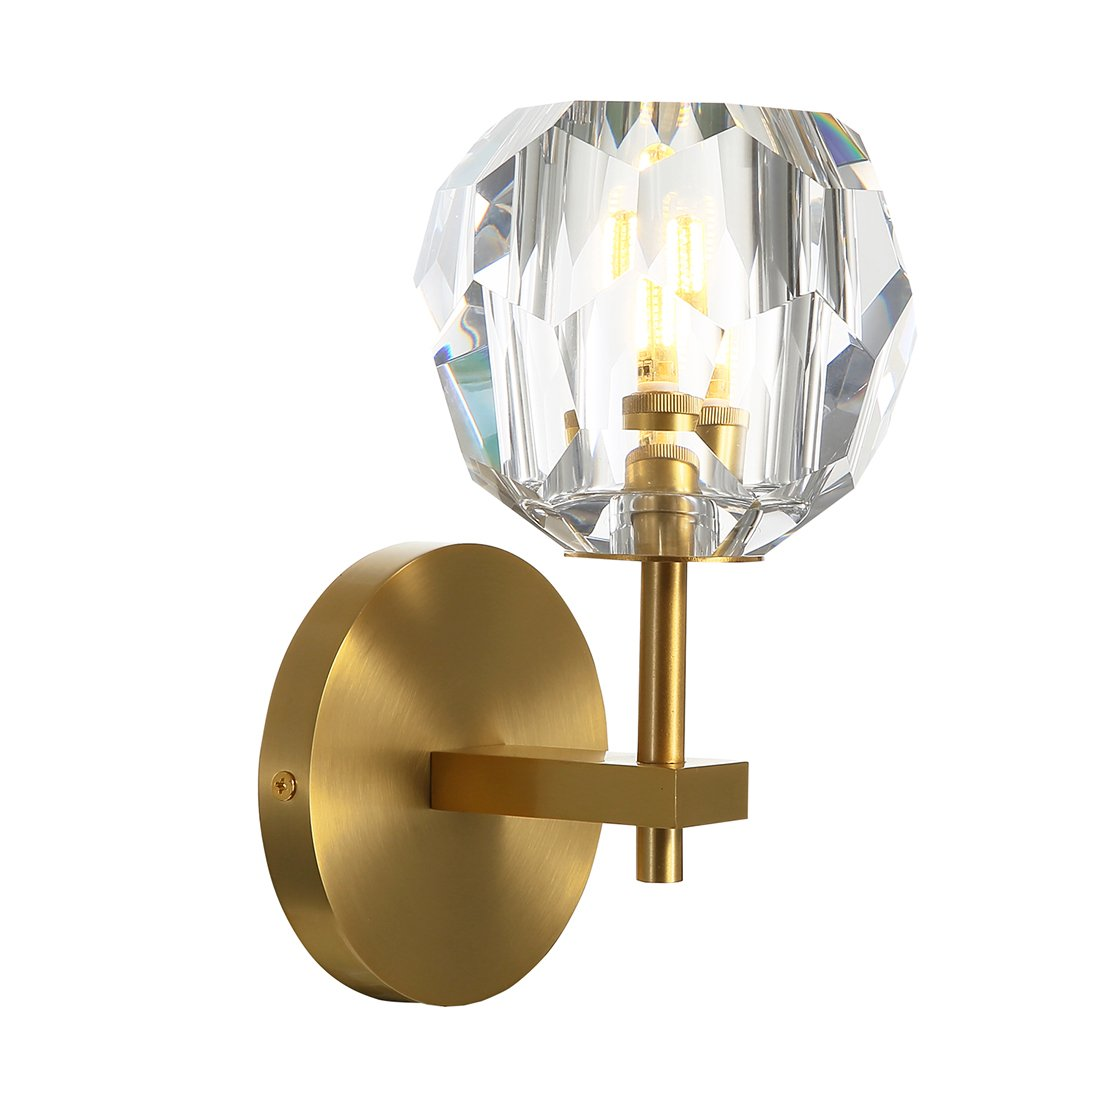 Yue Jia Top K9 Crystal Ball Wall Sconce Brass Material Body Wall Mounted Light Rustic Industrial Vintage Flush Mount Wall Light Crystal Globe Lampshade Brass Wall Sconce Wall Lamp Lighting Fixture